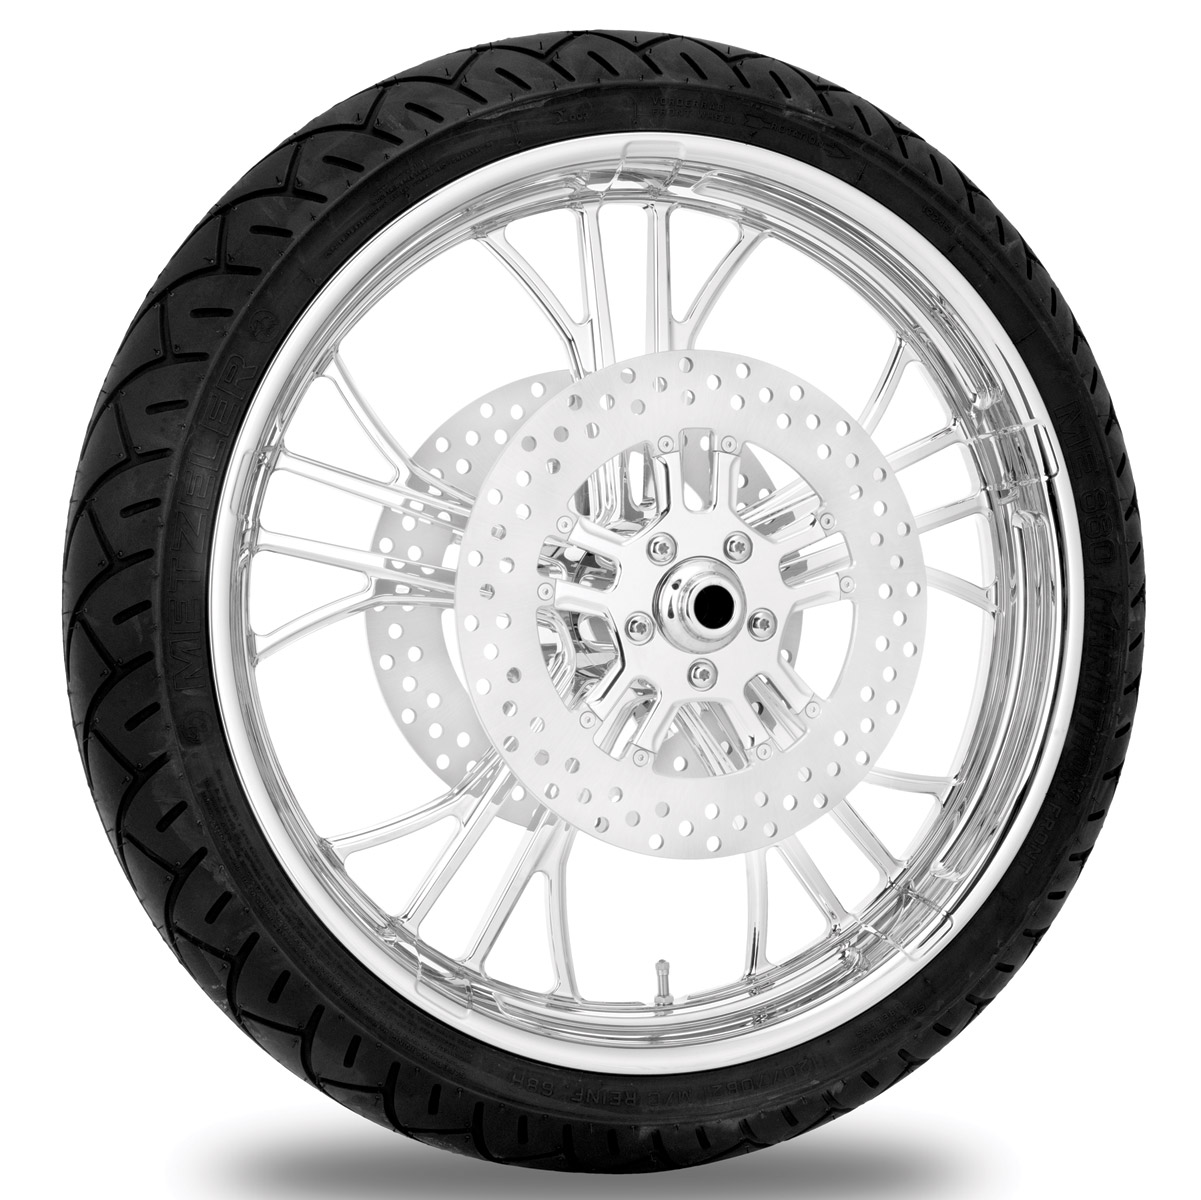 Performance Machine Dixon Chrome Front Wheel Package, 21″ x 3.5 without ABS